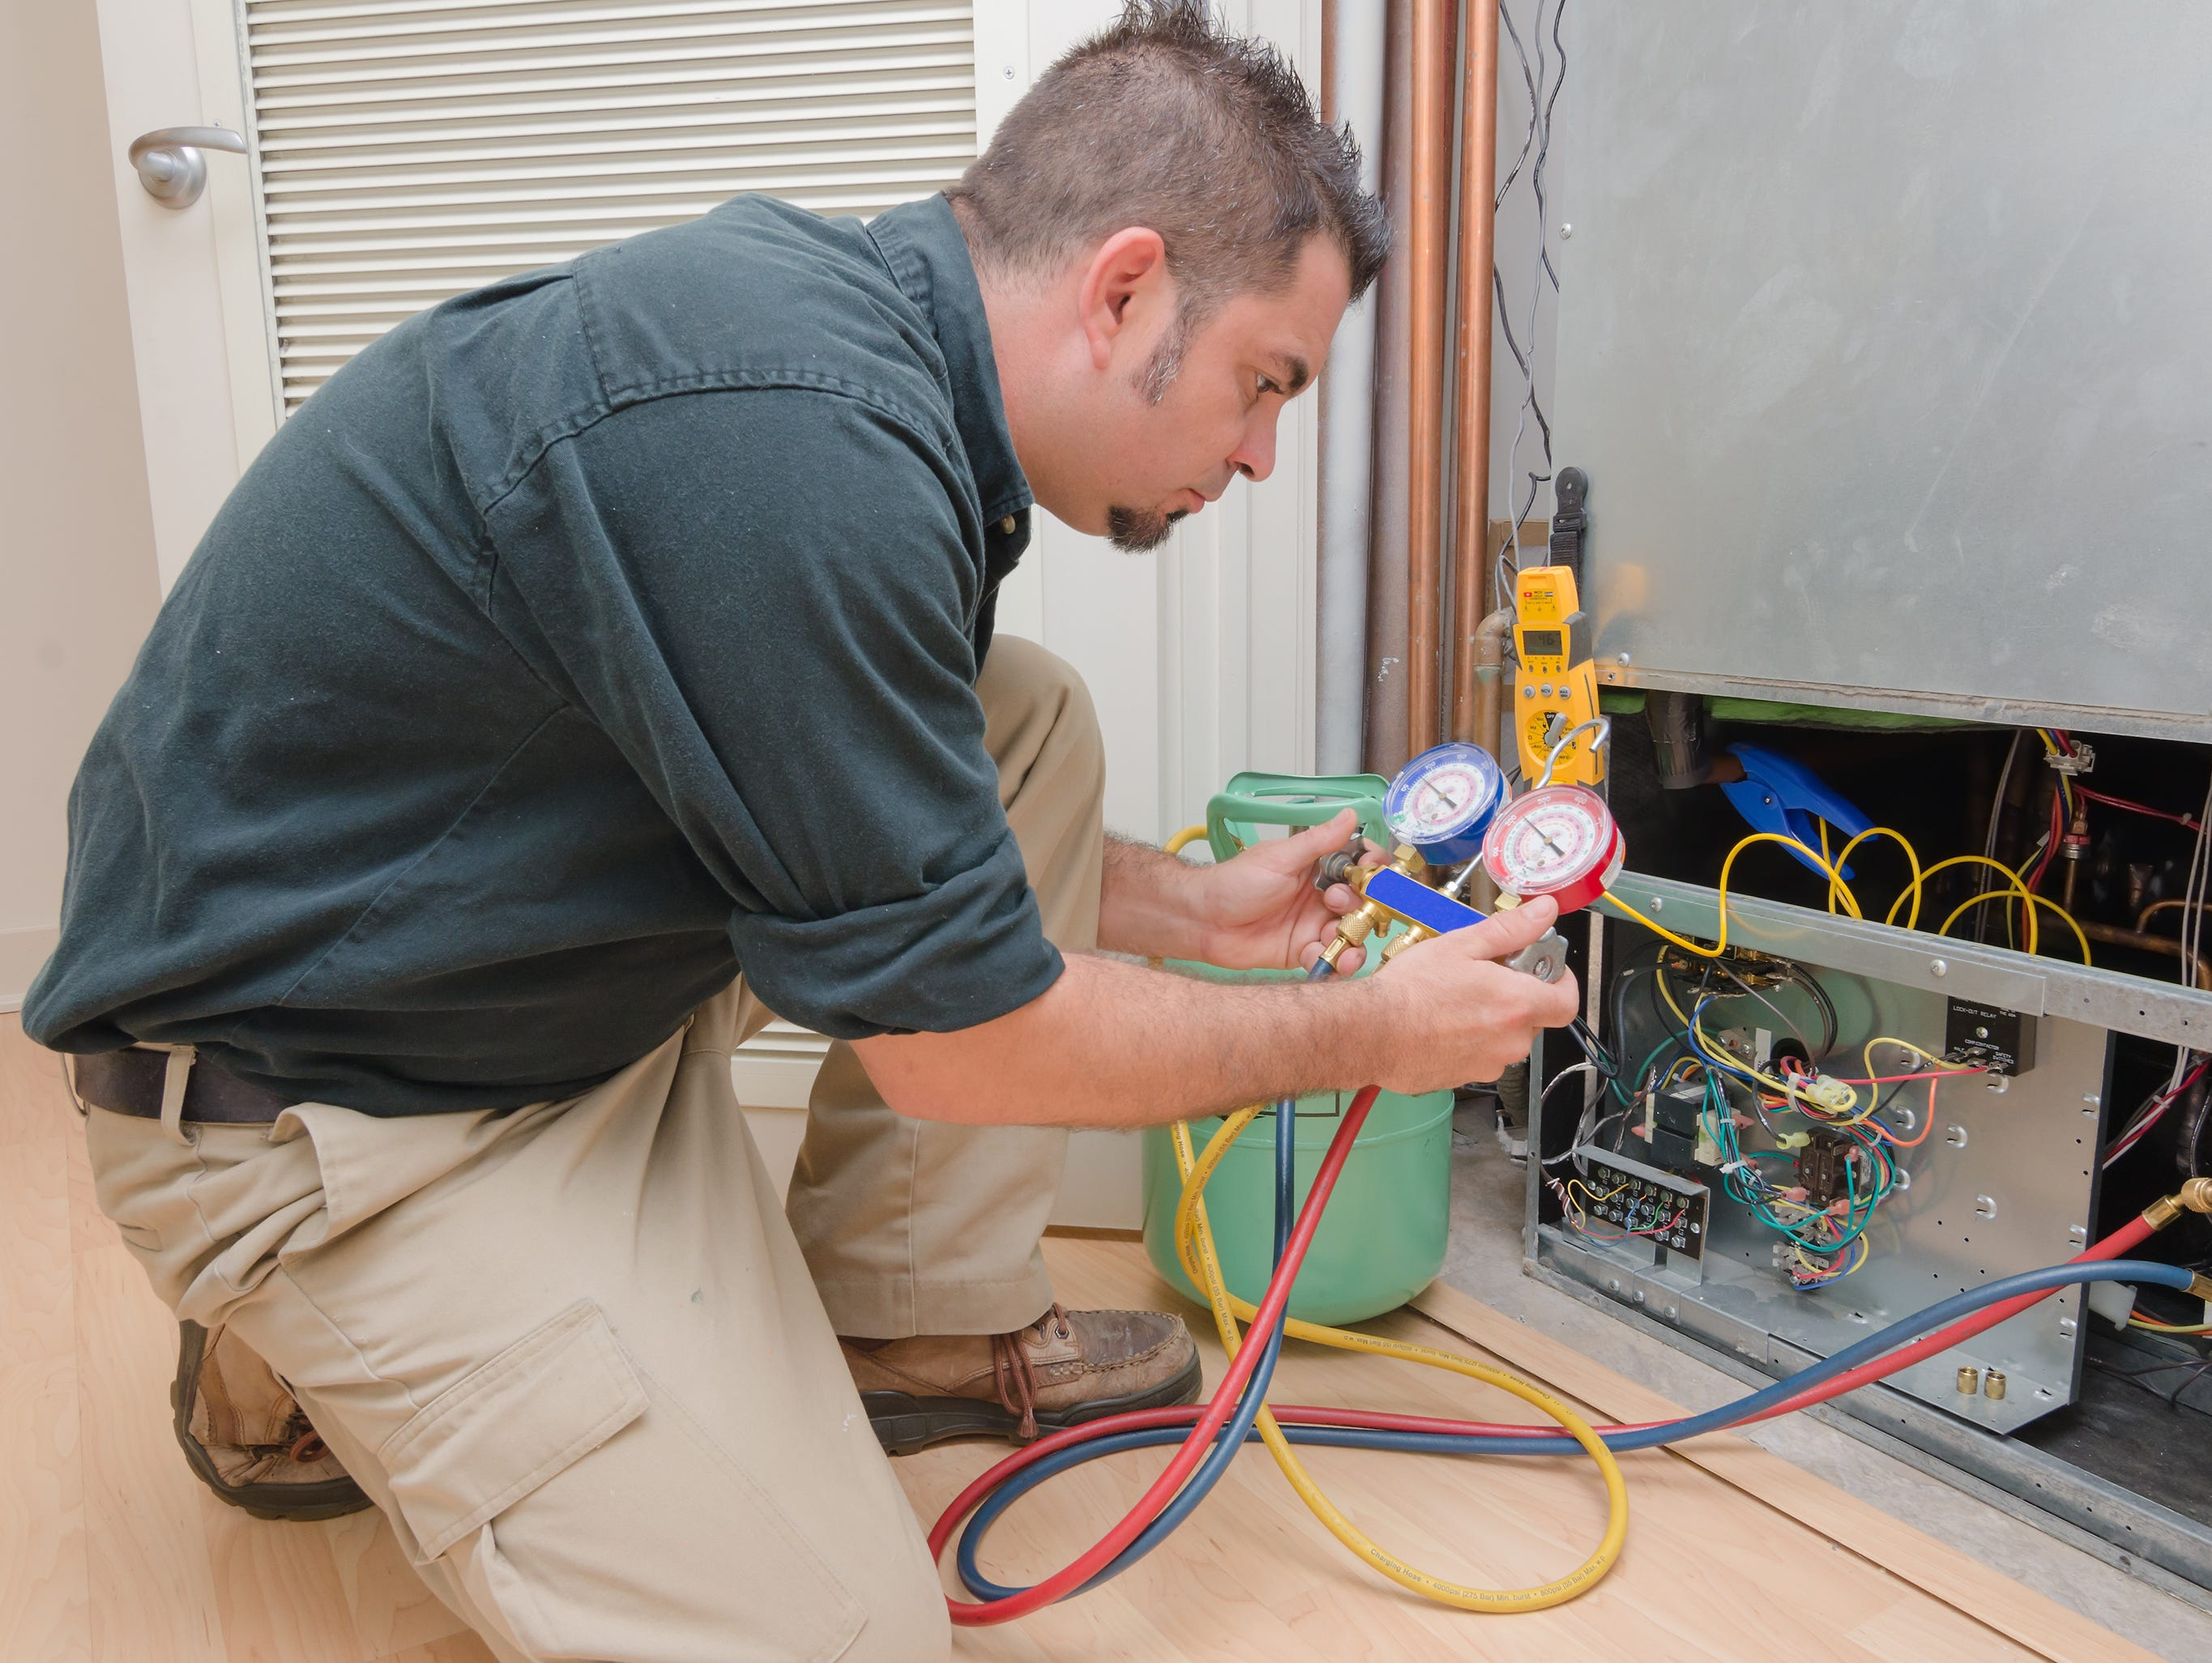 Find HVAC pros to ready your AC for the summer heat – Post your job & we'll split the tab, up to $50!